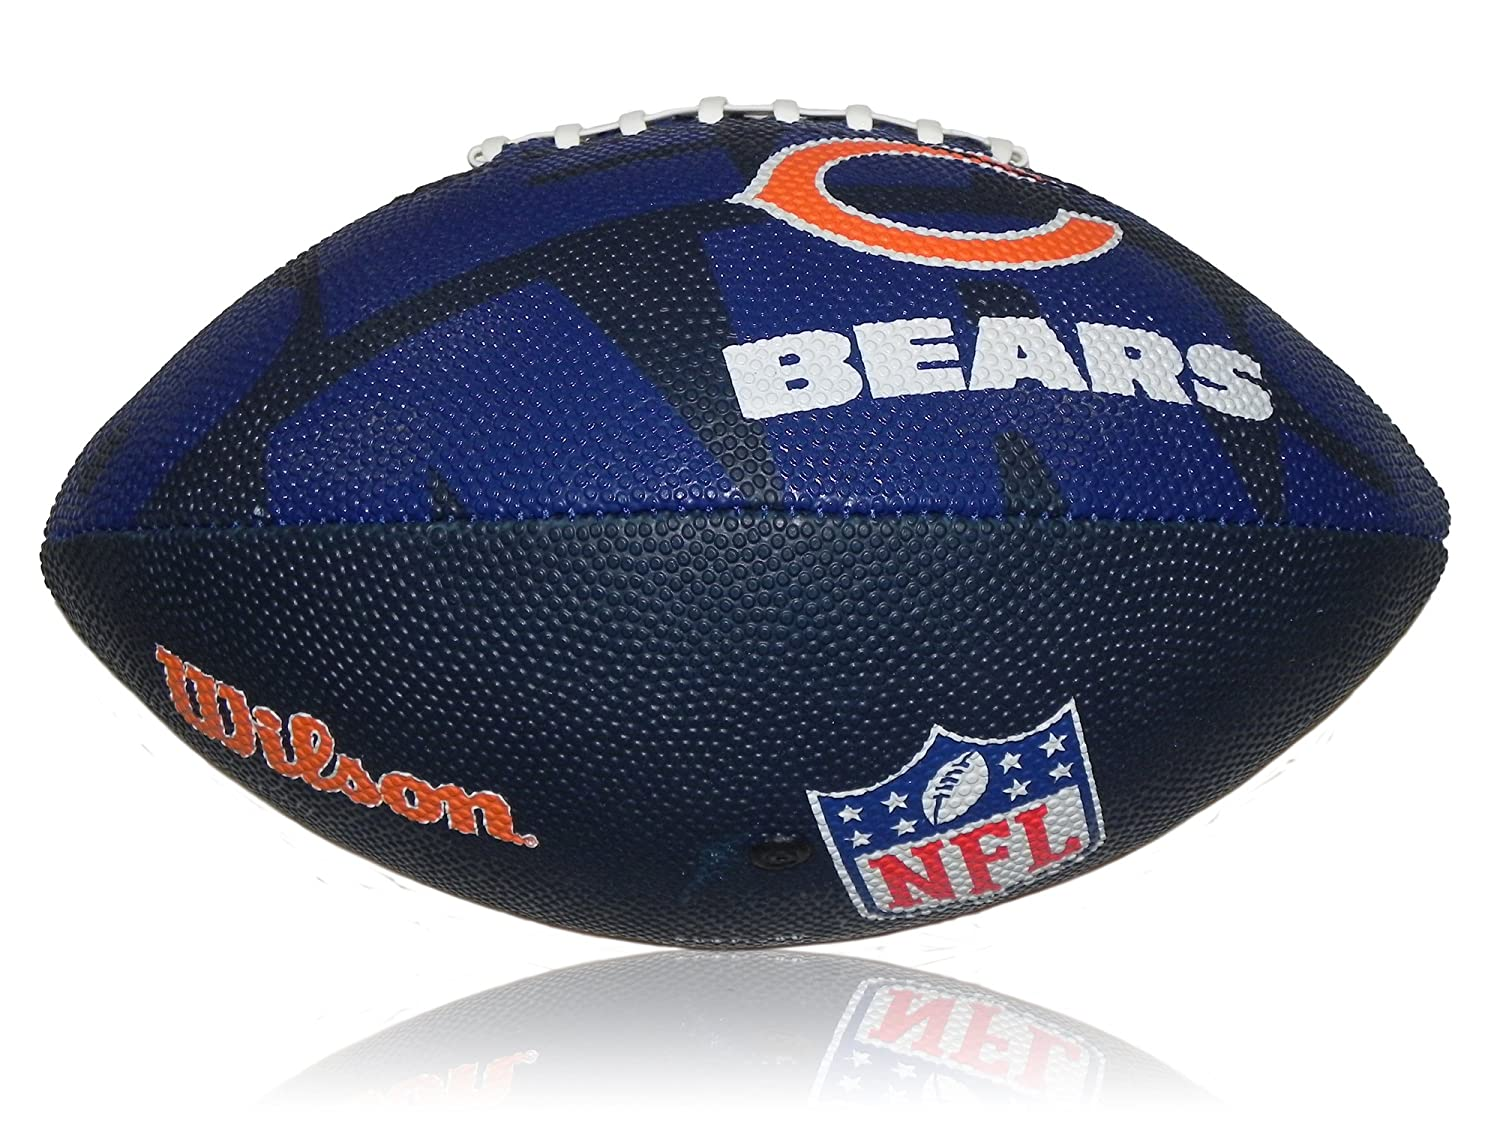 WILSON WL0206824040 - Pallone Ufficiale NFL Junior, con Logo dei Chicago Bears, Multicolore, 5